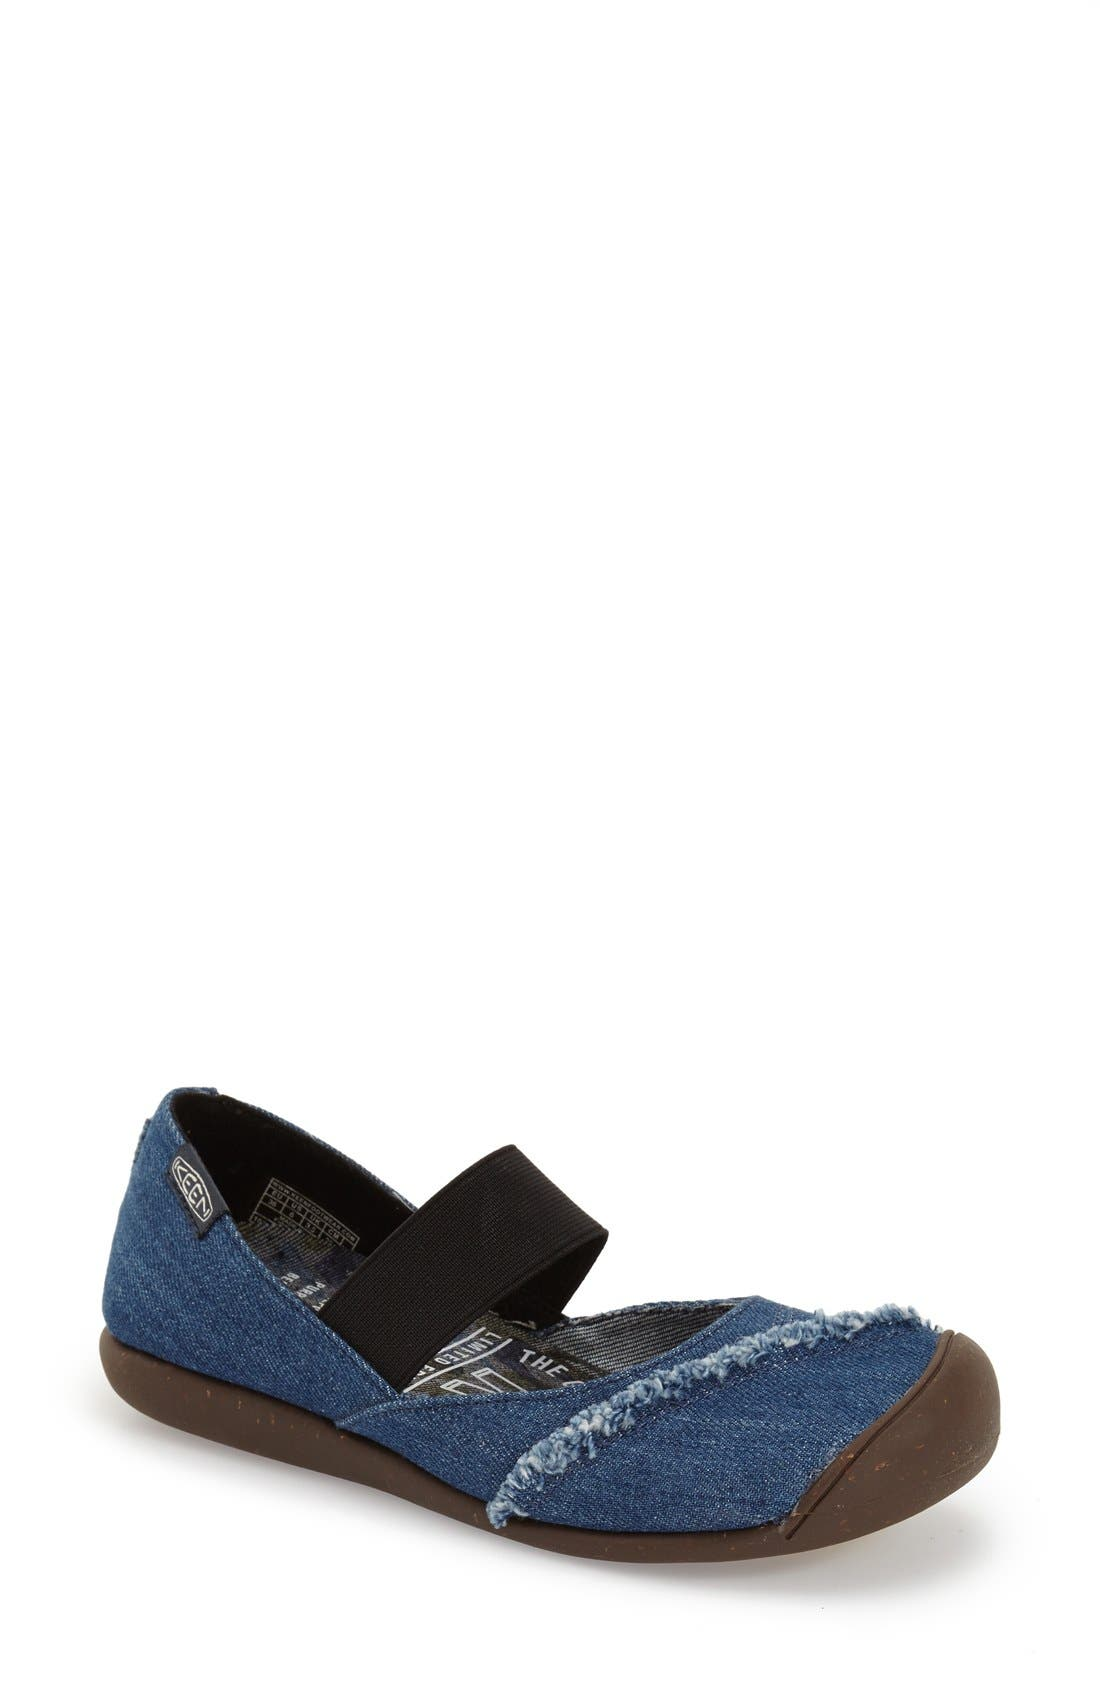 Main Image - Keen 'Good Jeans' Mary Jane Flat (Women)